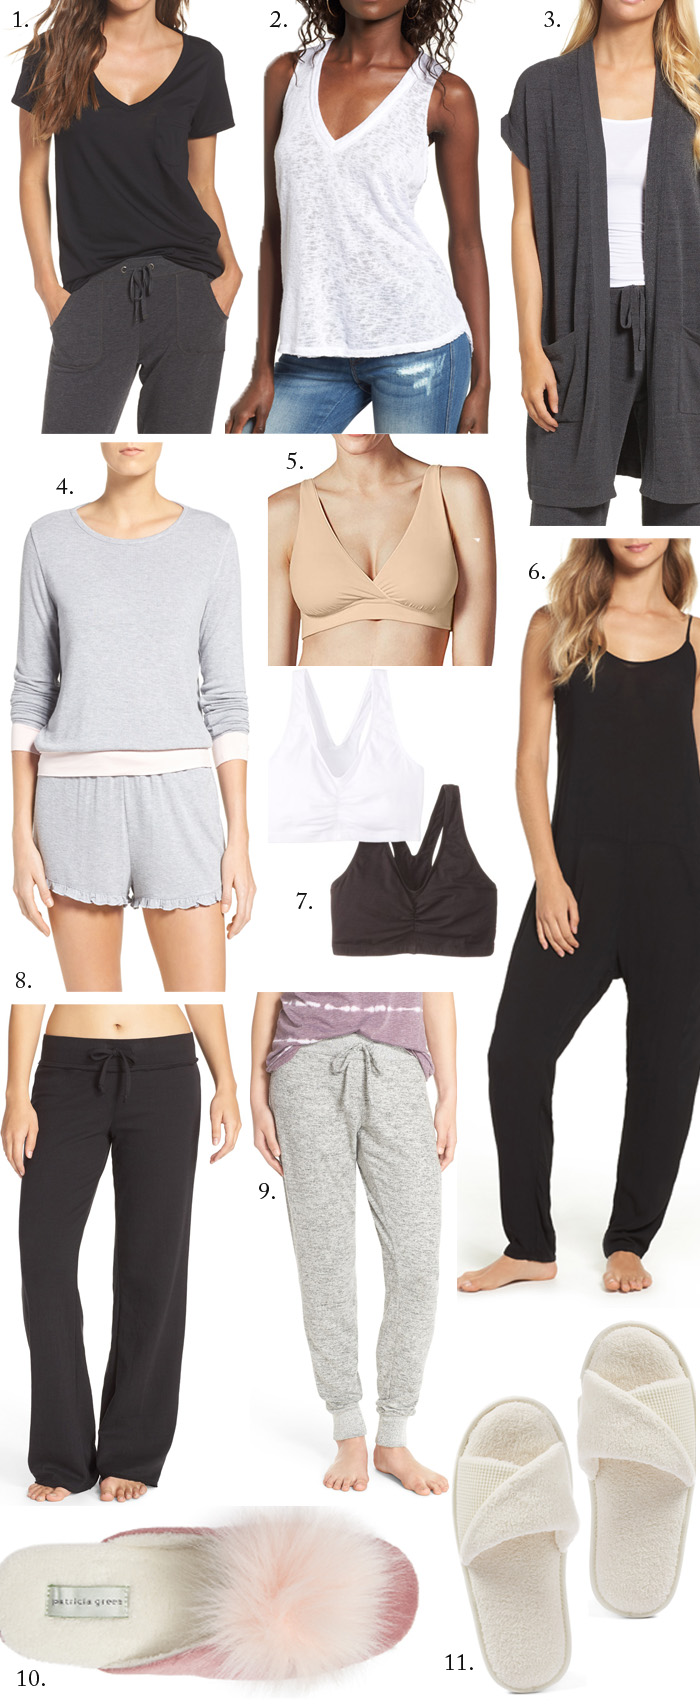 Style Board Series: Comfy Loungewear + Cute PJs